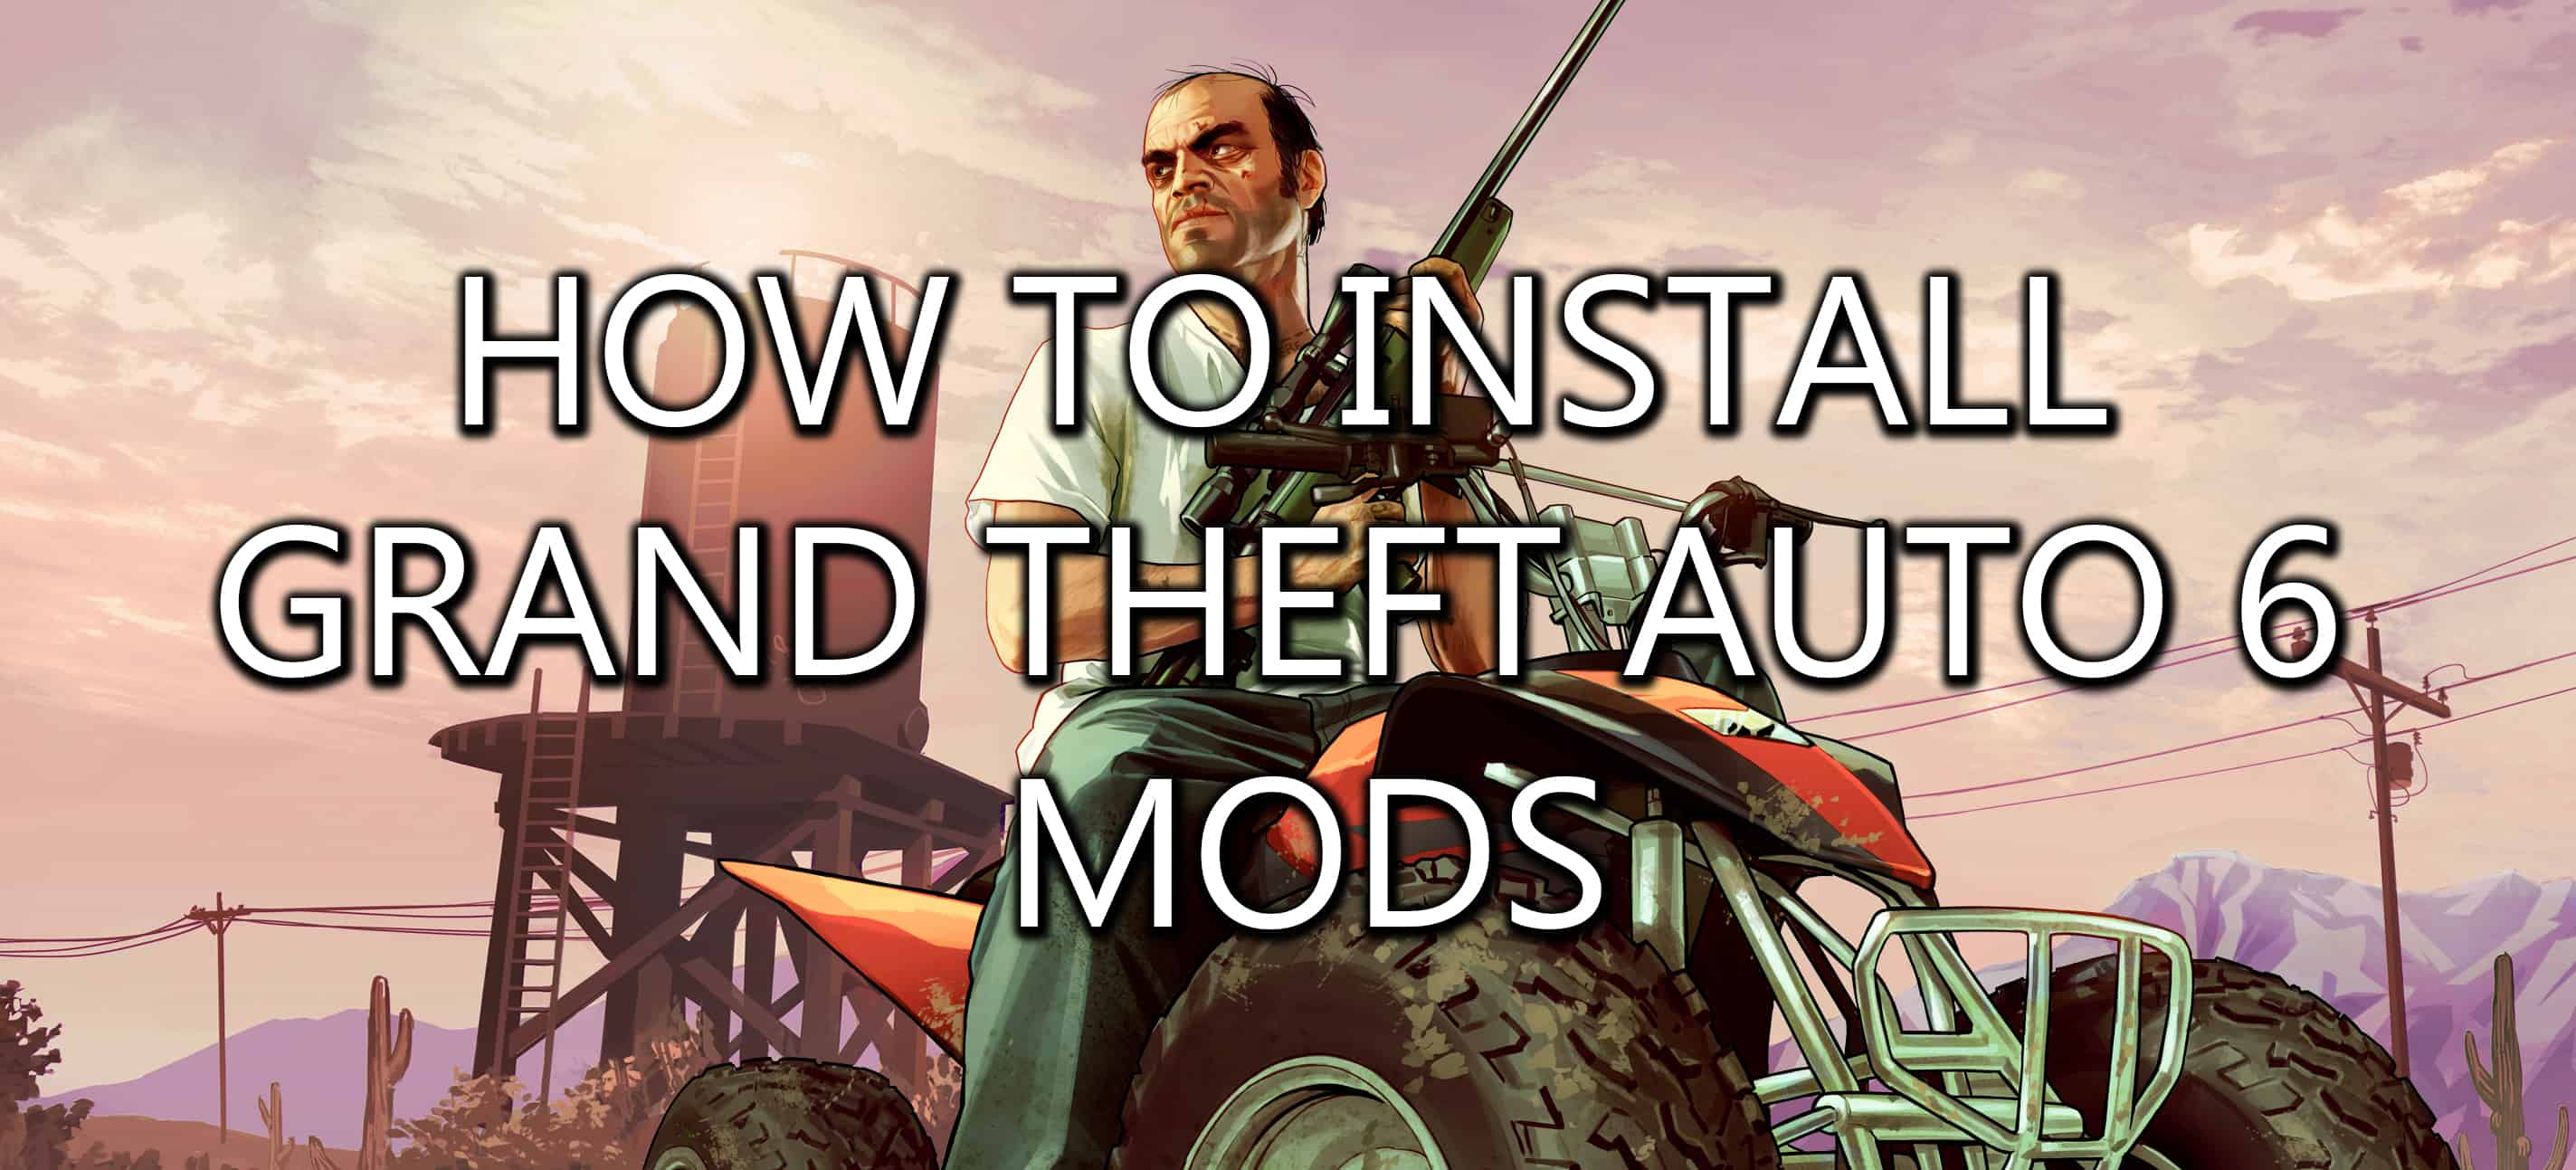 How to install GTA 6 Mods | How to install Grand Theft Auto